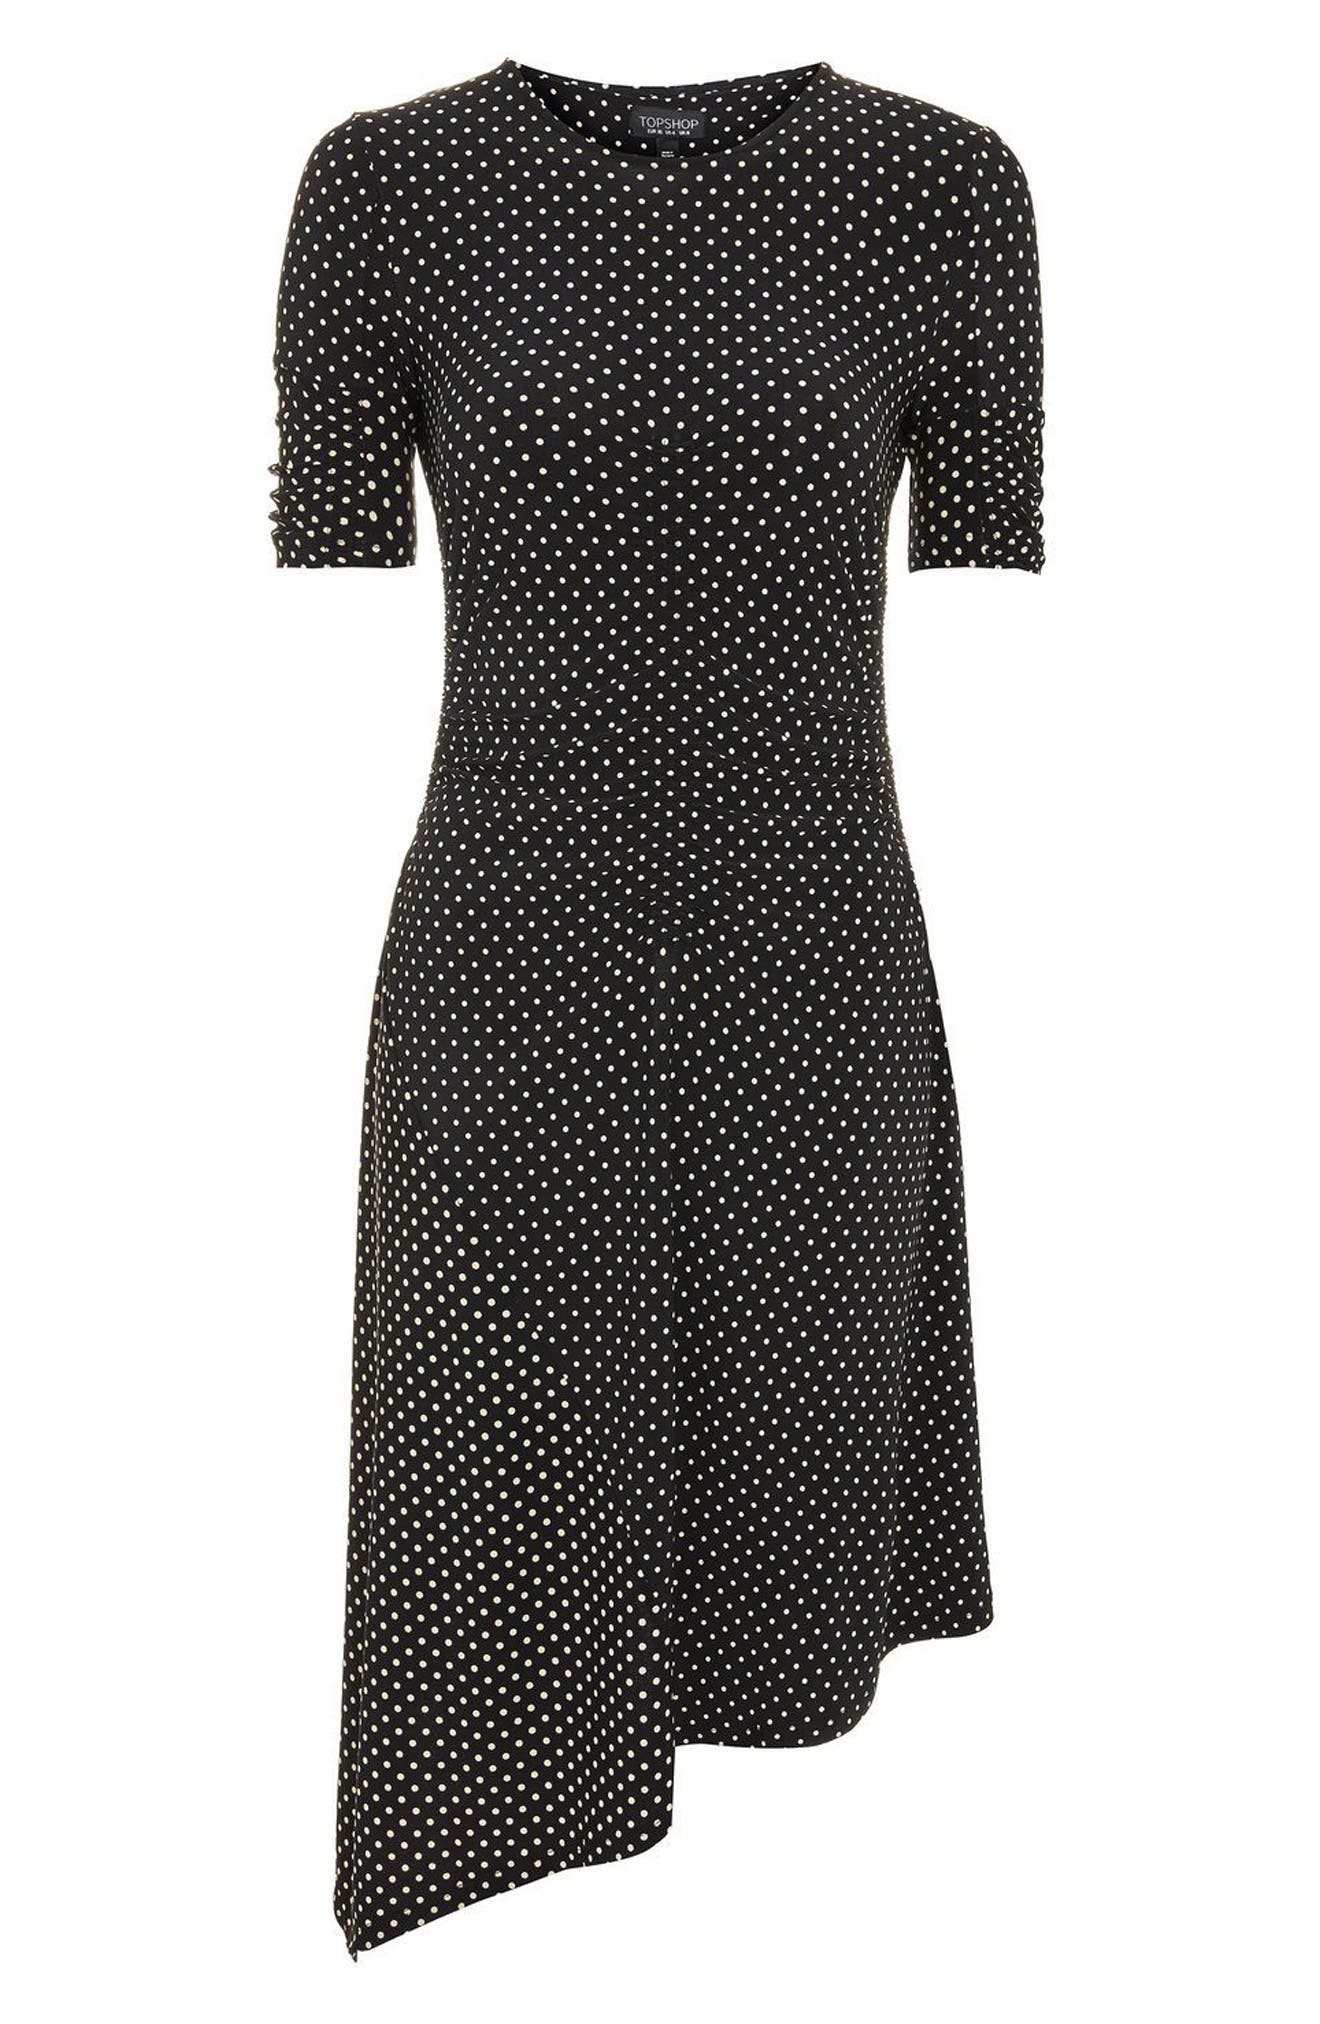 Polka Dot Asymmetrical Midi Dress,                             Alternate thumbnail 3, color,                             001